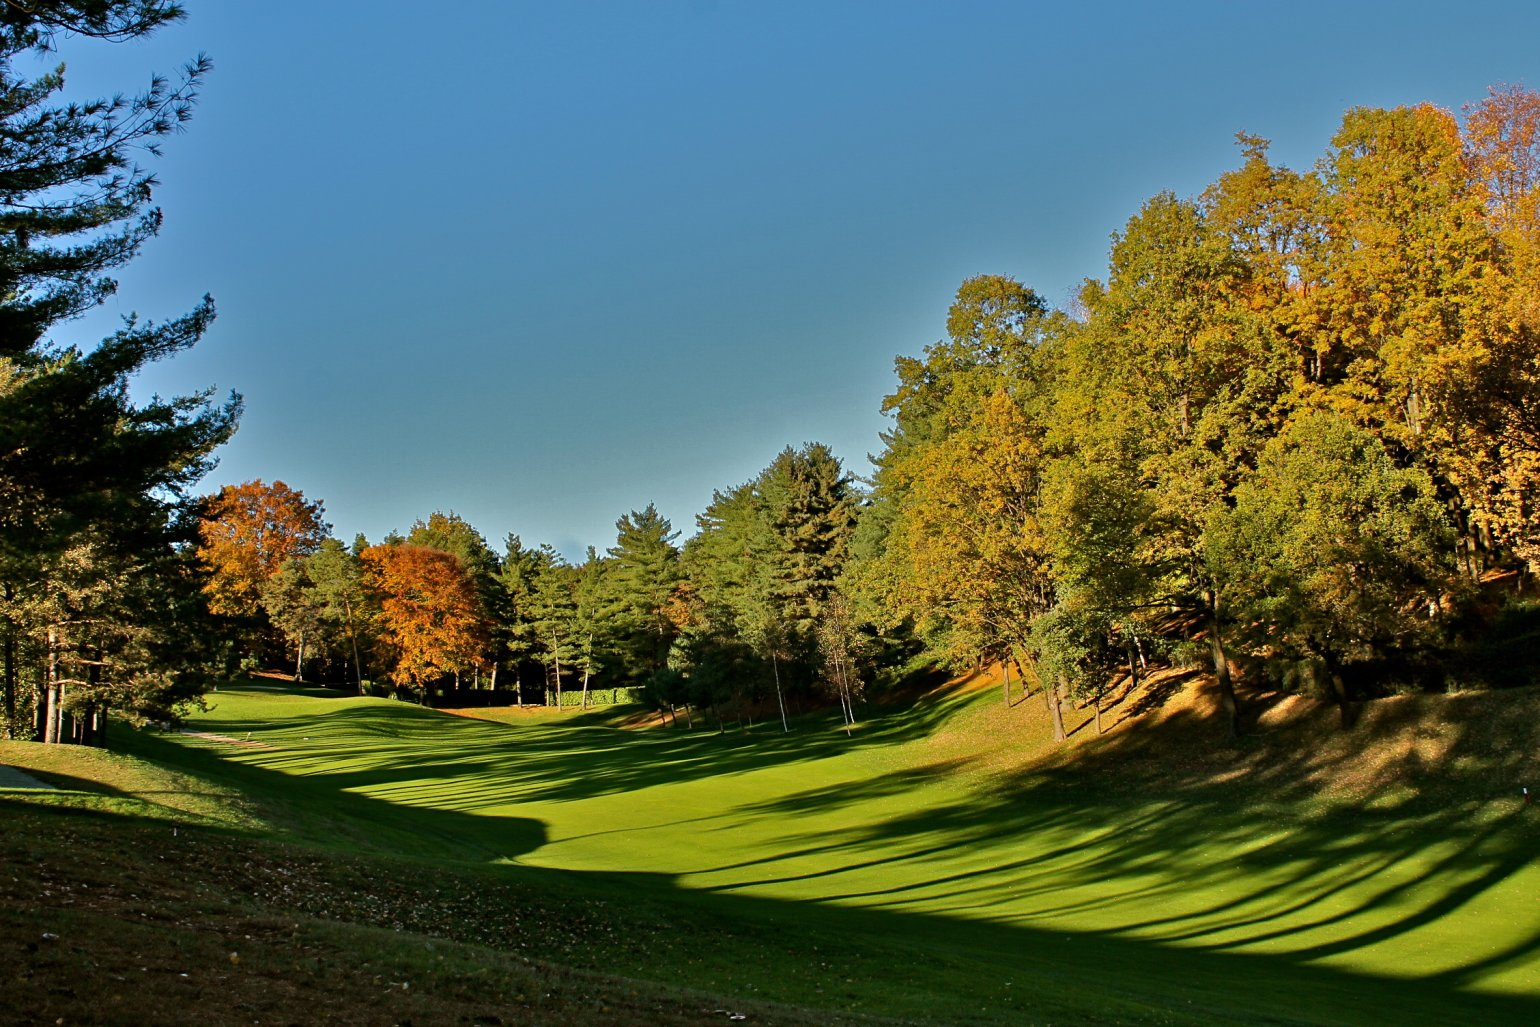 IT-Golf-Club-La-Pinetina-3-1-1540x1027